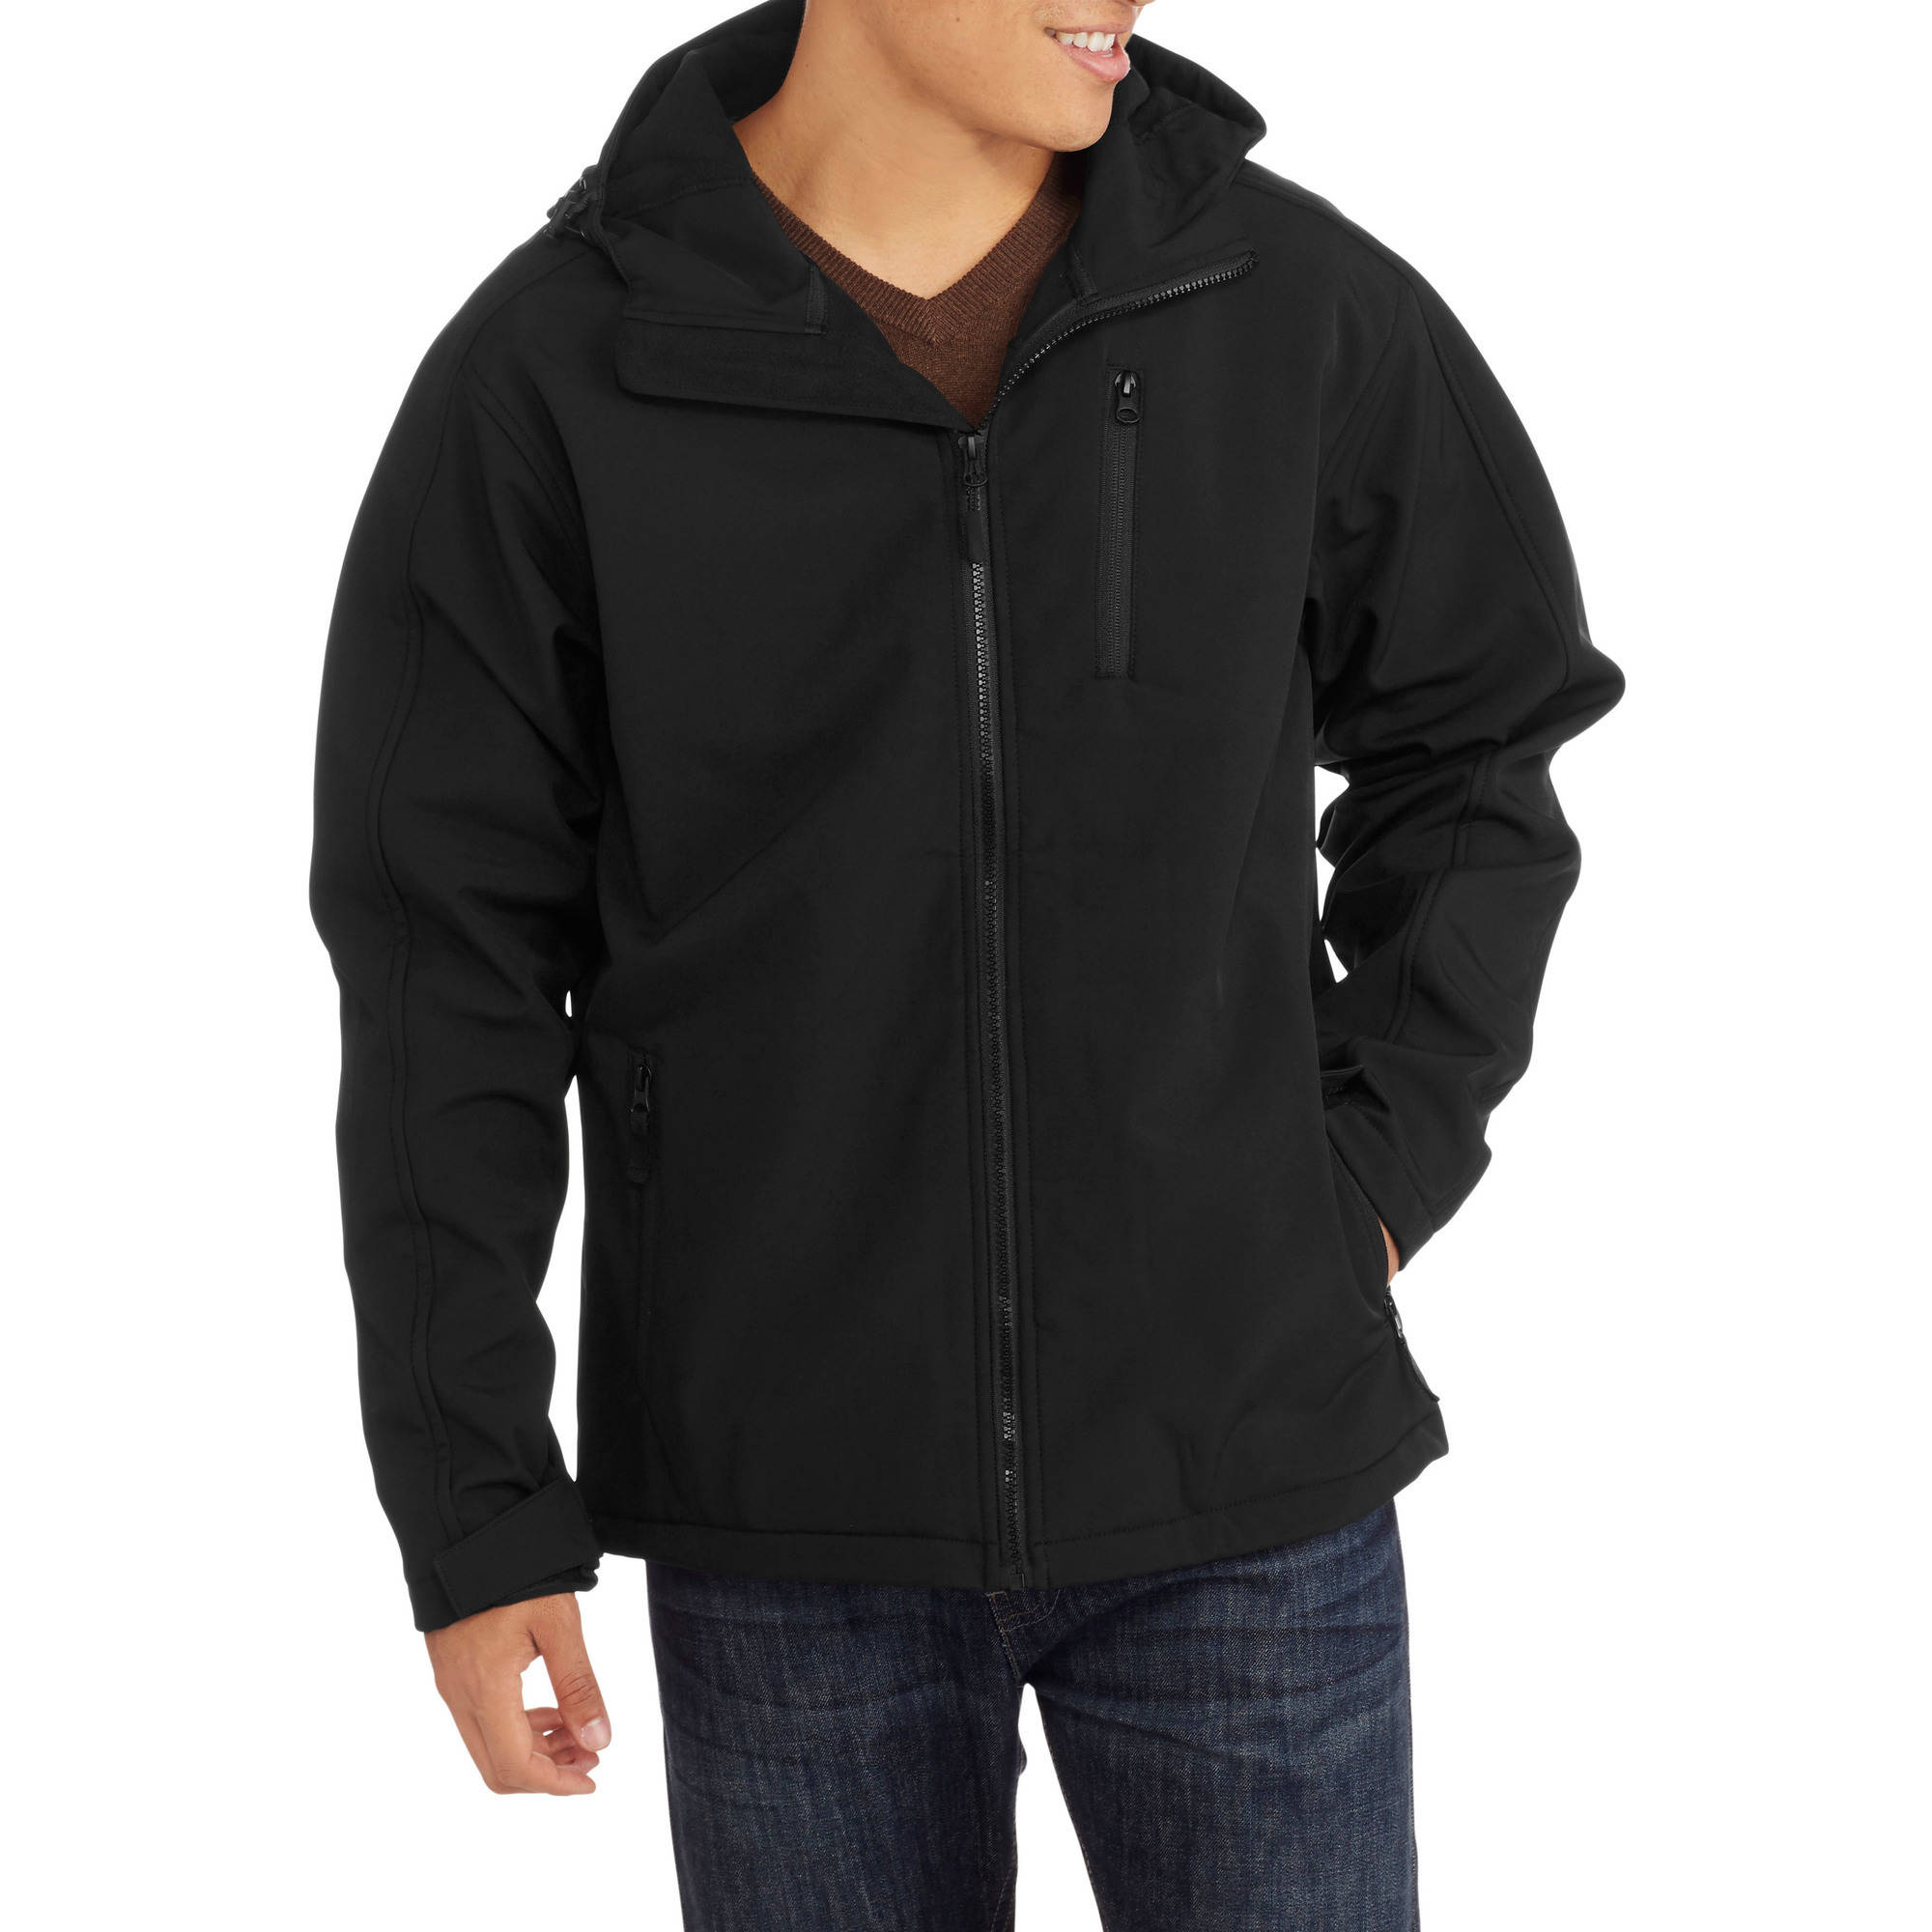 Men's Hooded Soft Shell Jacket by